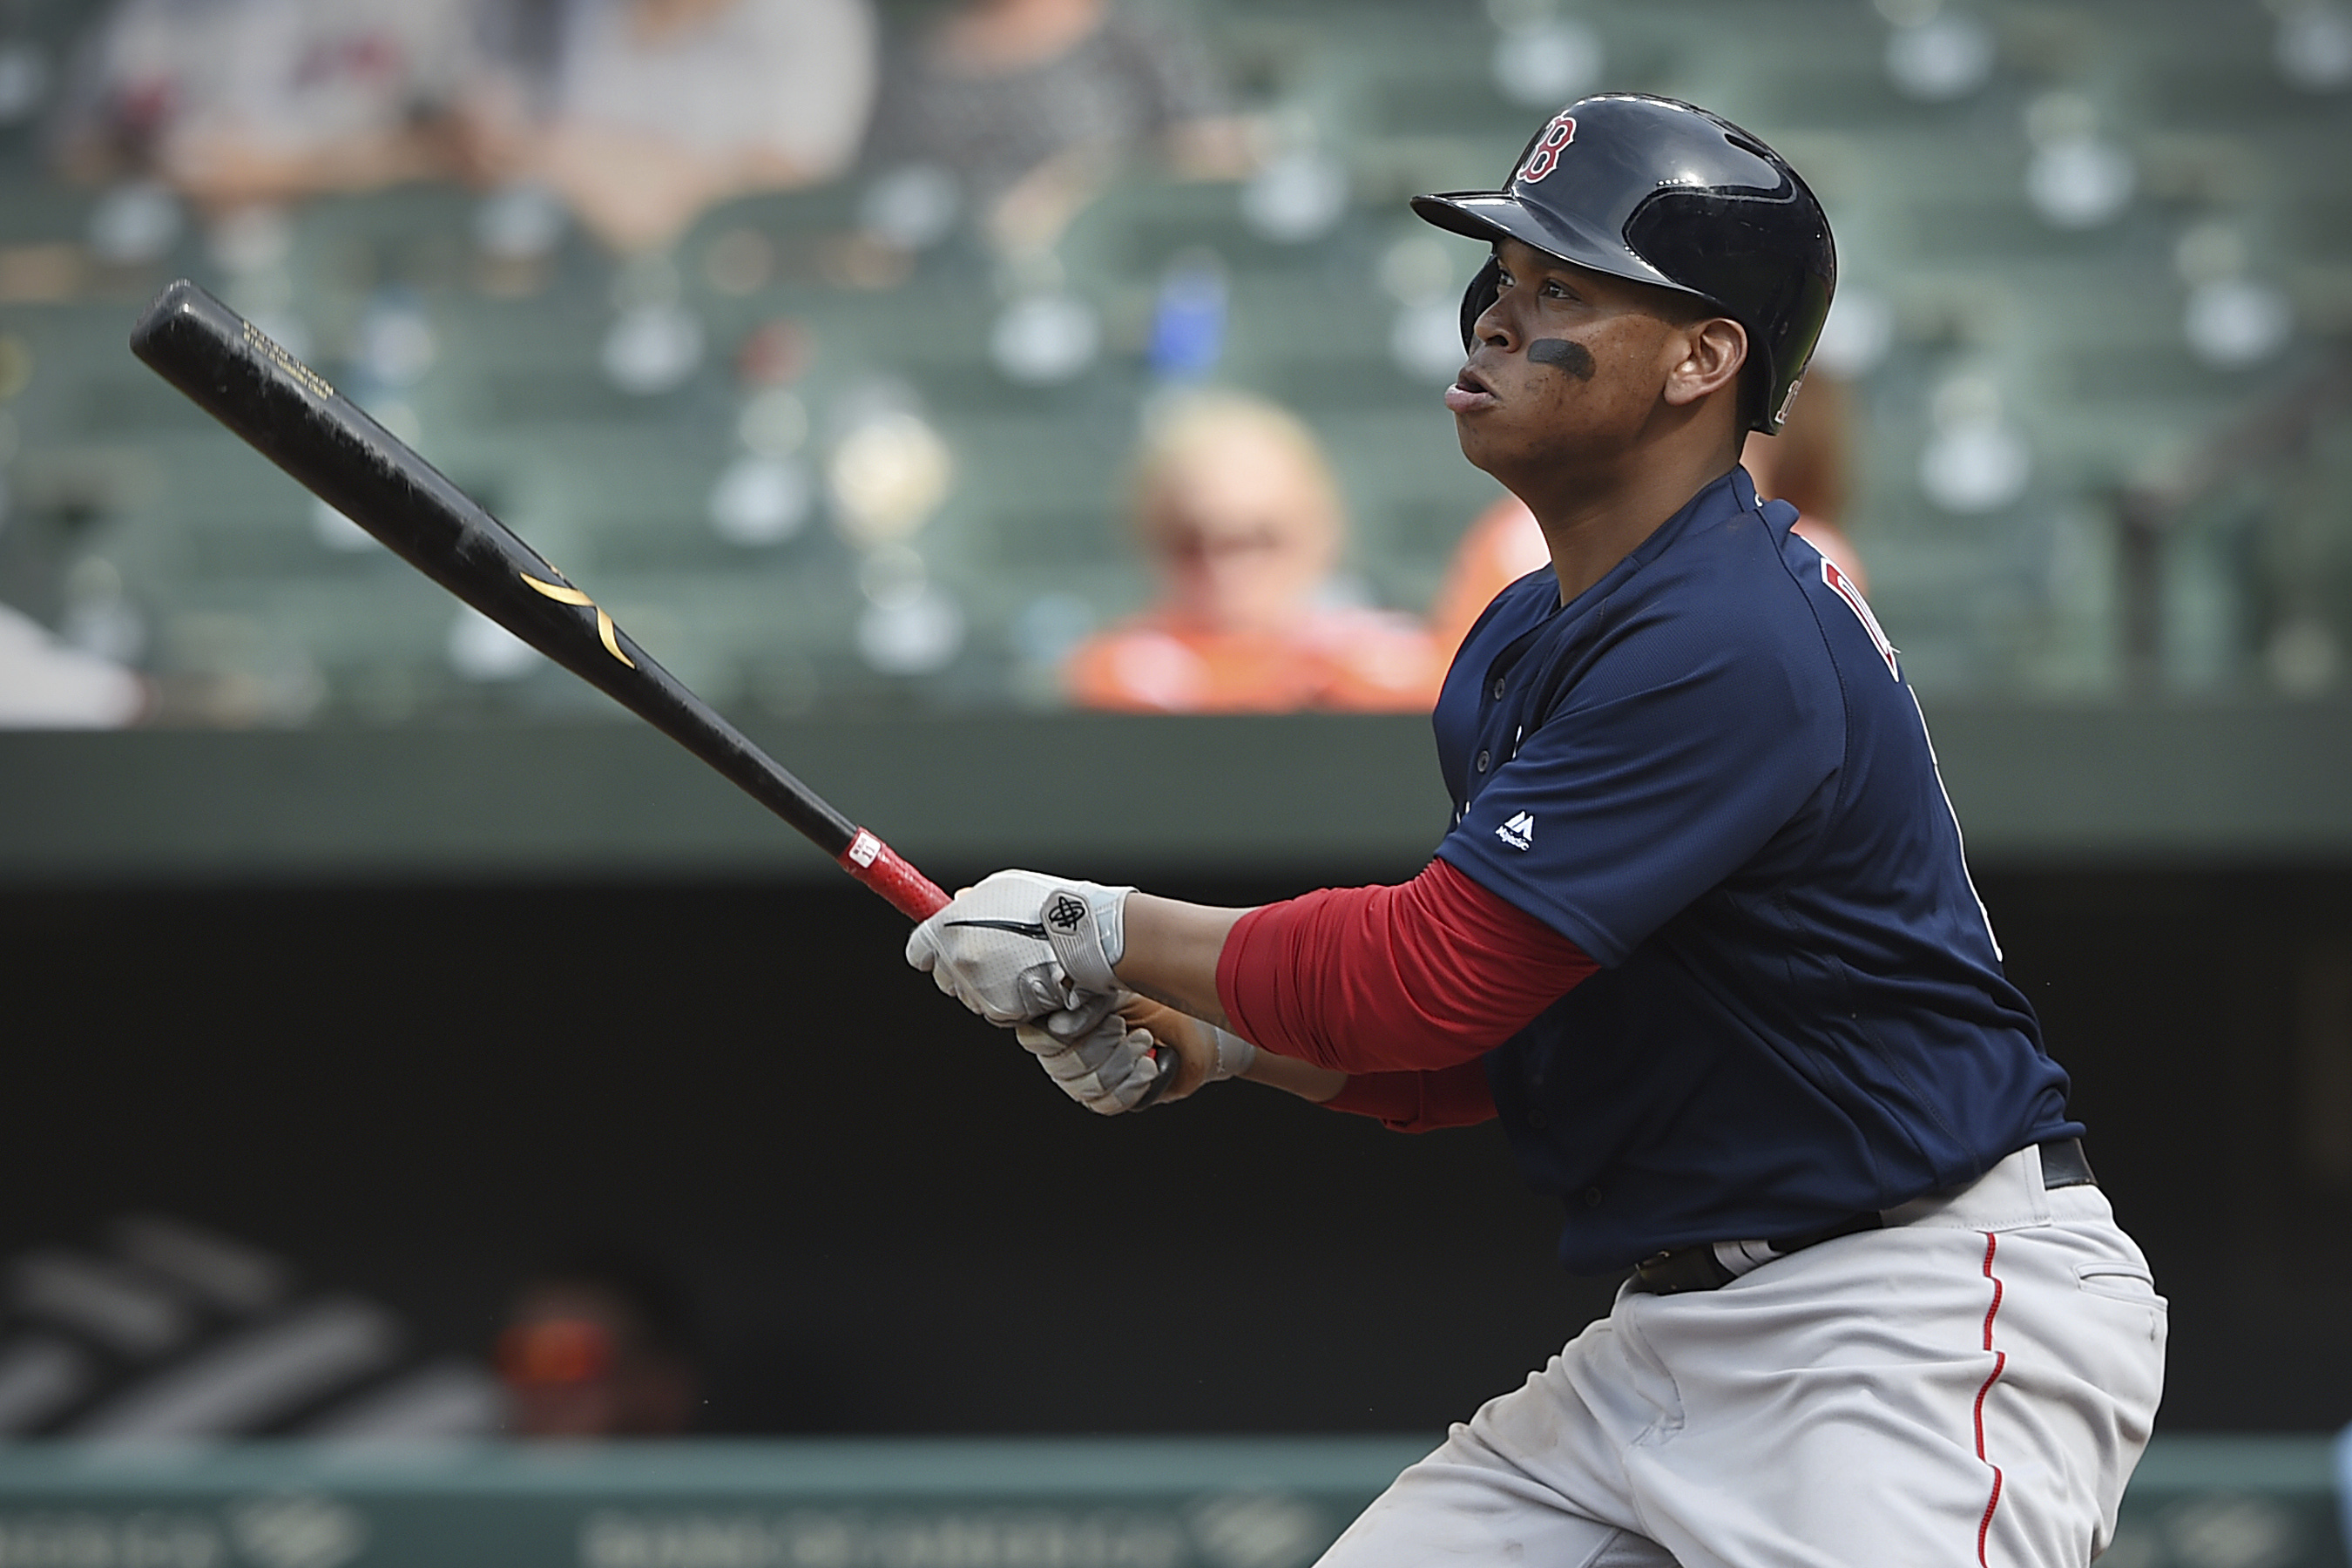 Rafael Devers's homer Sunday was the talk of the Red Sox' dugout